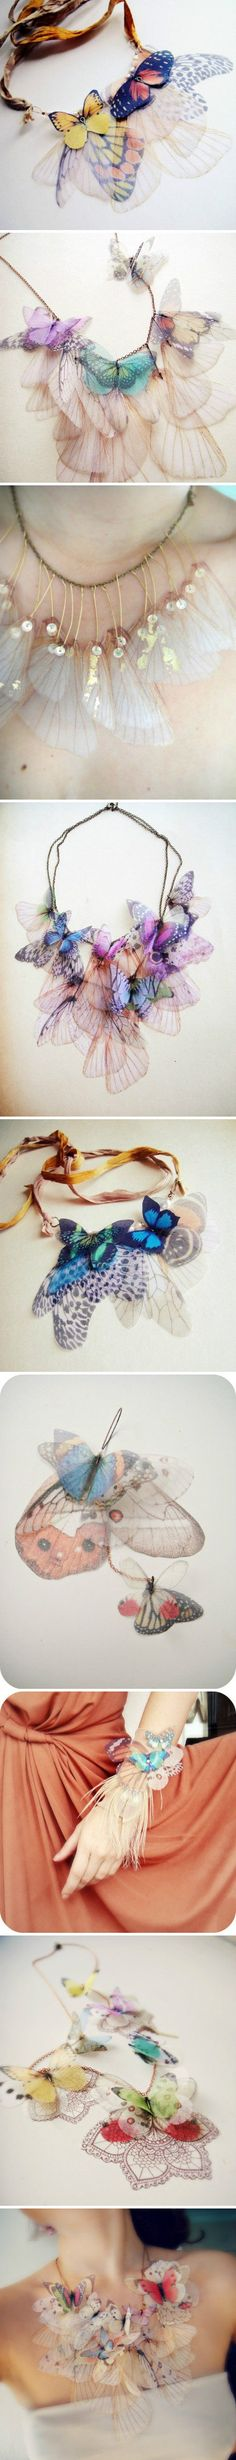 True Siou organza double adhesive stain can make this effect Diy Jewelry, Jewelry Accessories, Handmade Jewelry, Jewelry Design, Butterfly Crafts, Good Tutorials, Fantasy Jewelry, Diy Necklace, Jewelries